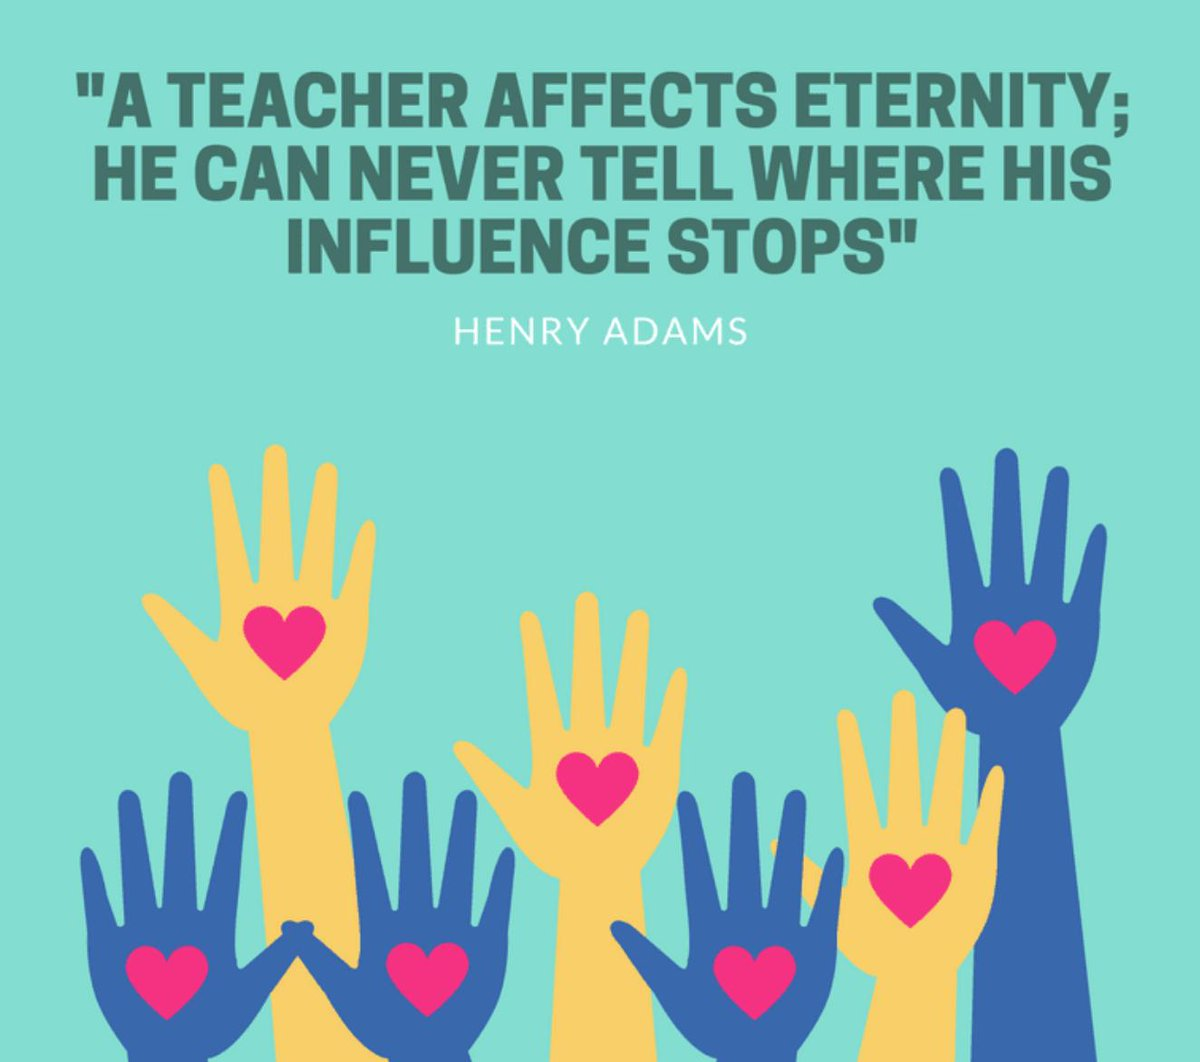 """""""A teacher affects eternity; he can never tell where his influence stops."""" — Henry Adams #edquote #motivationalquote <br>http://pic.twitter.com/CUC5JR5zYX"""